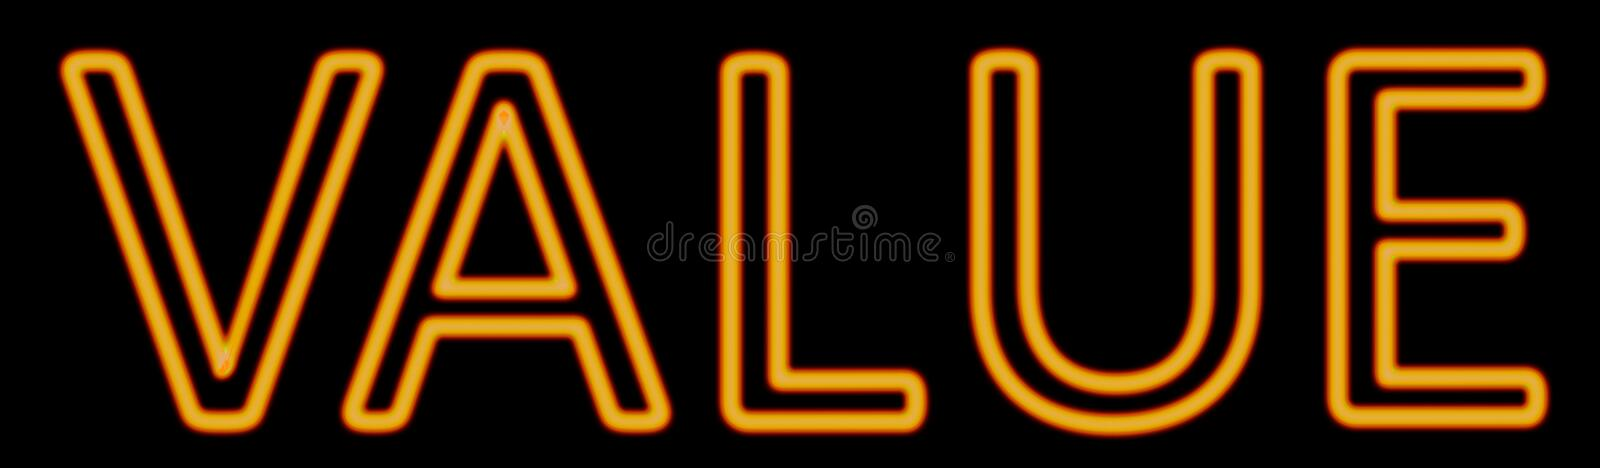 Value neon sign royalty free illustration